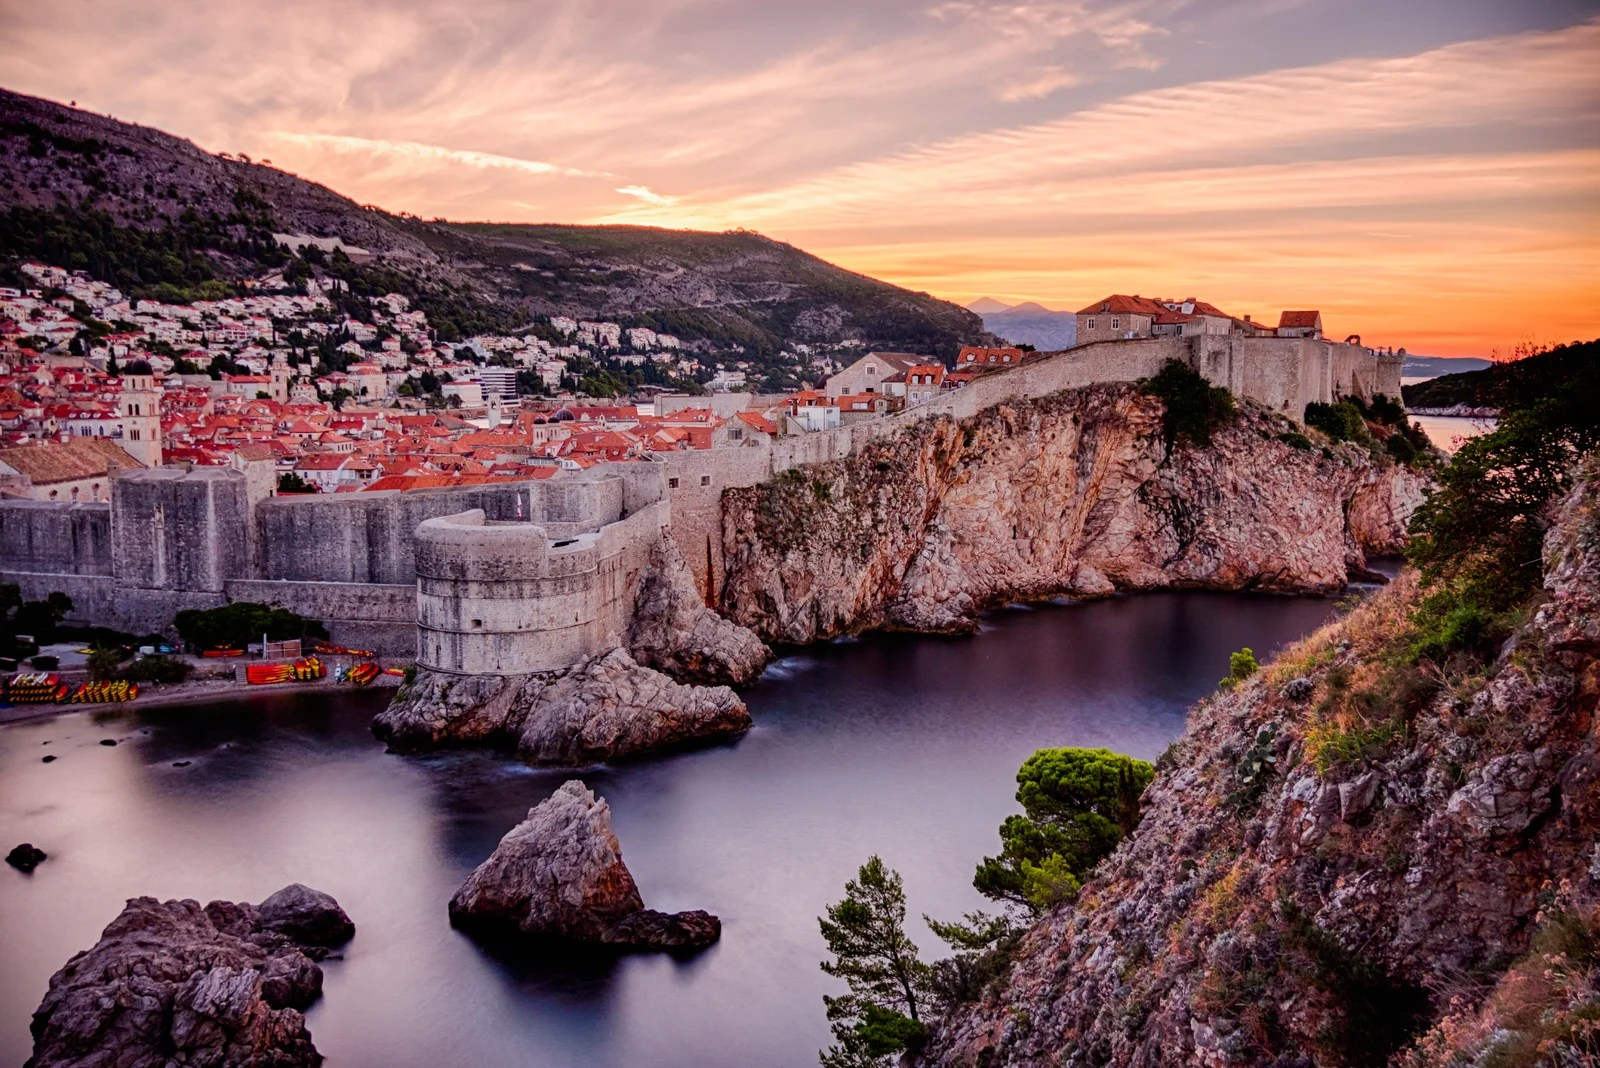 Second cities: Destinations to add on to a trip to Dubrovnik, Croatia